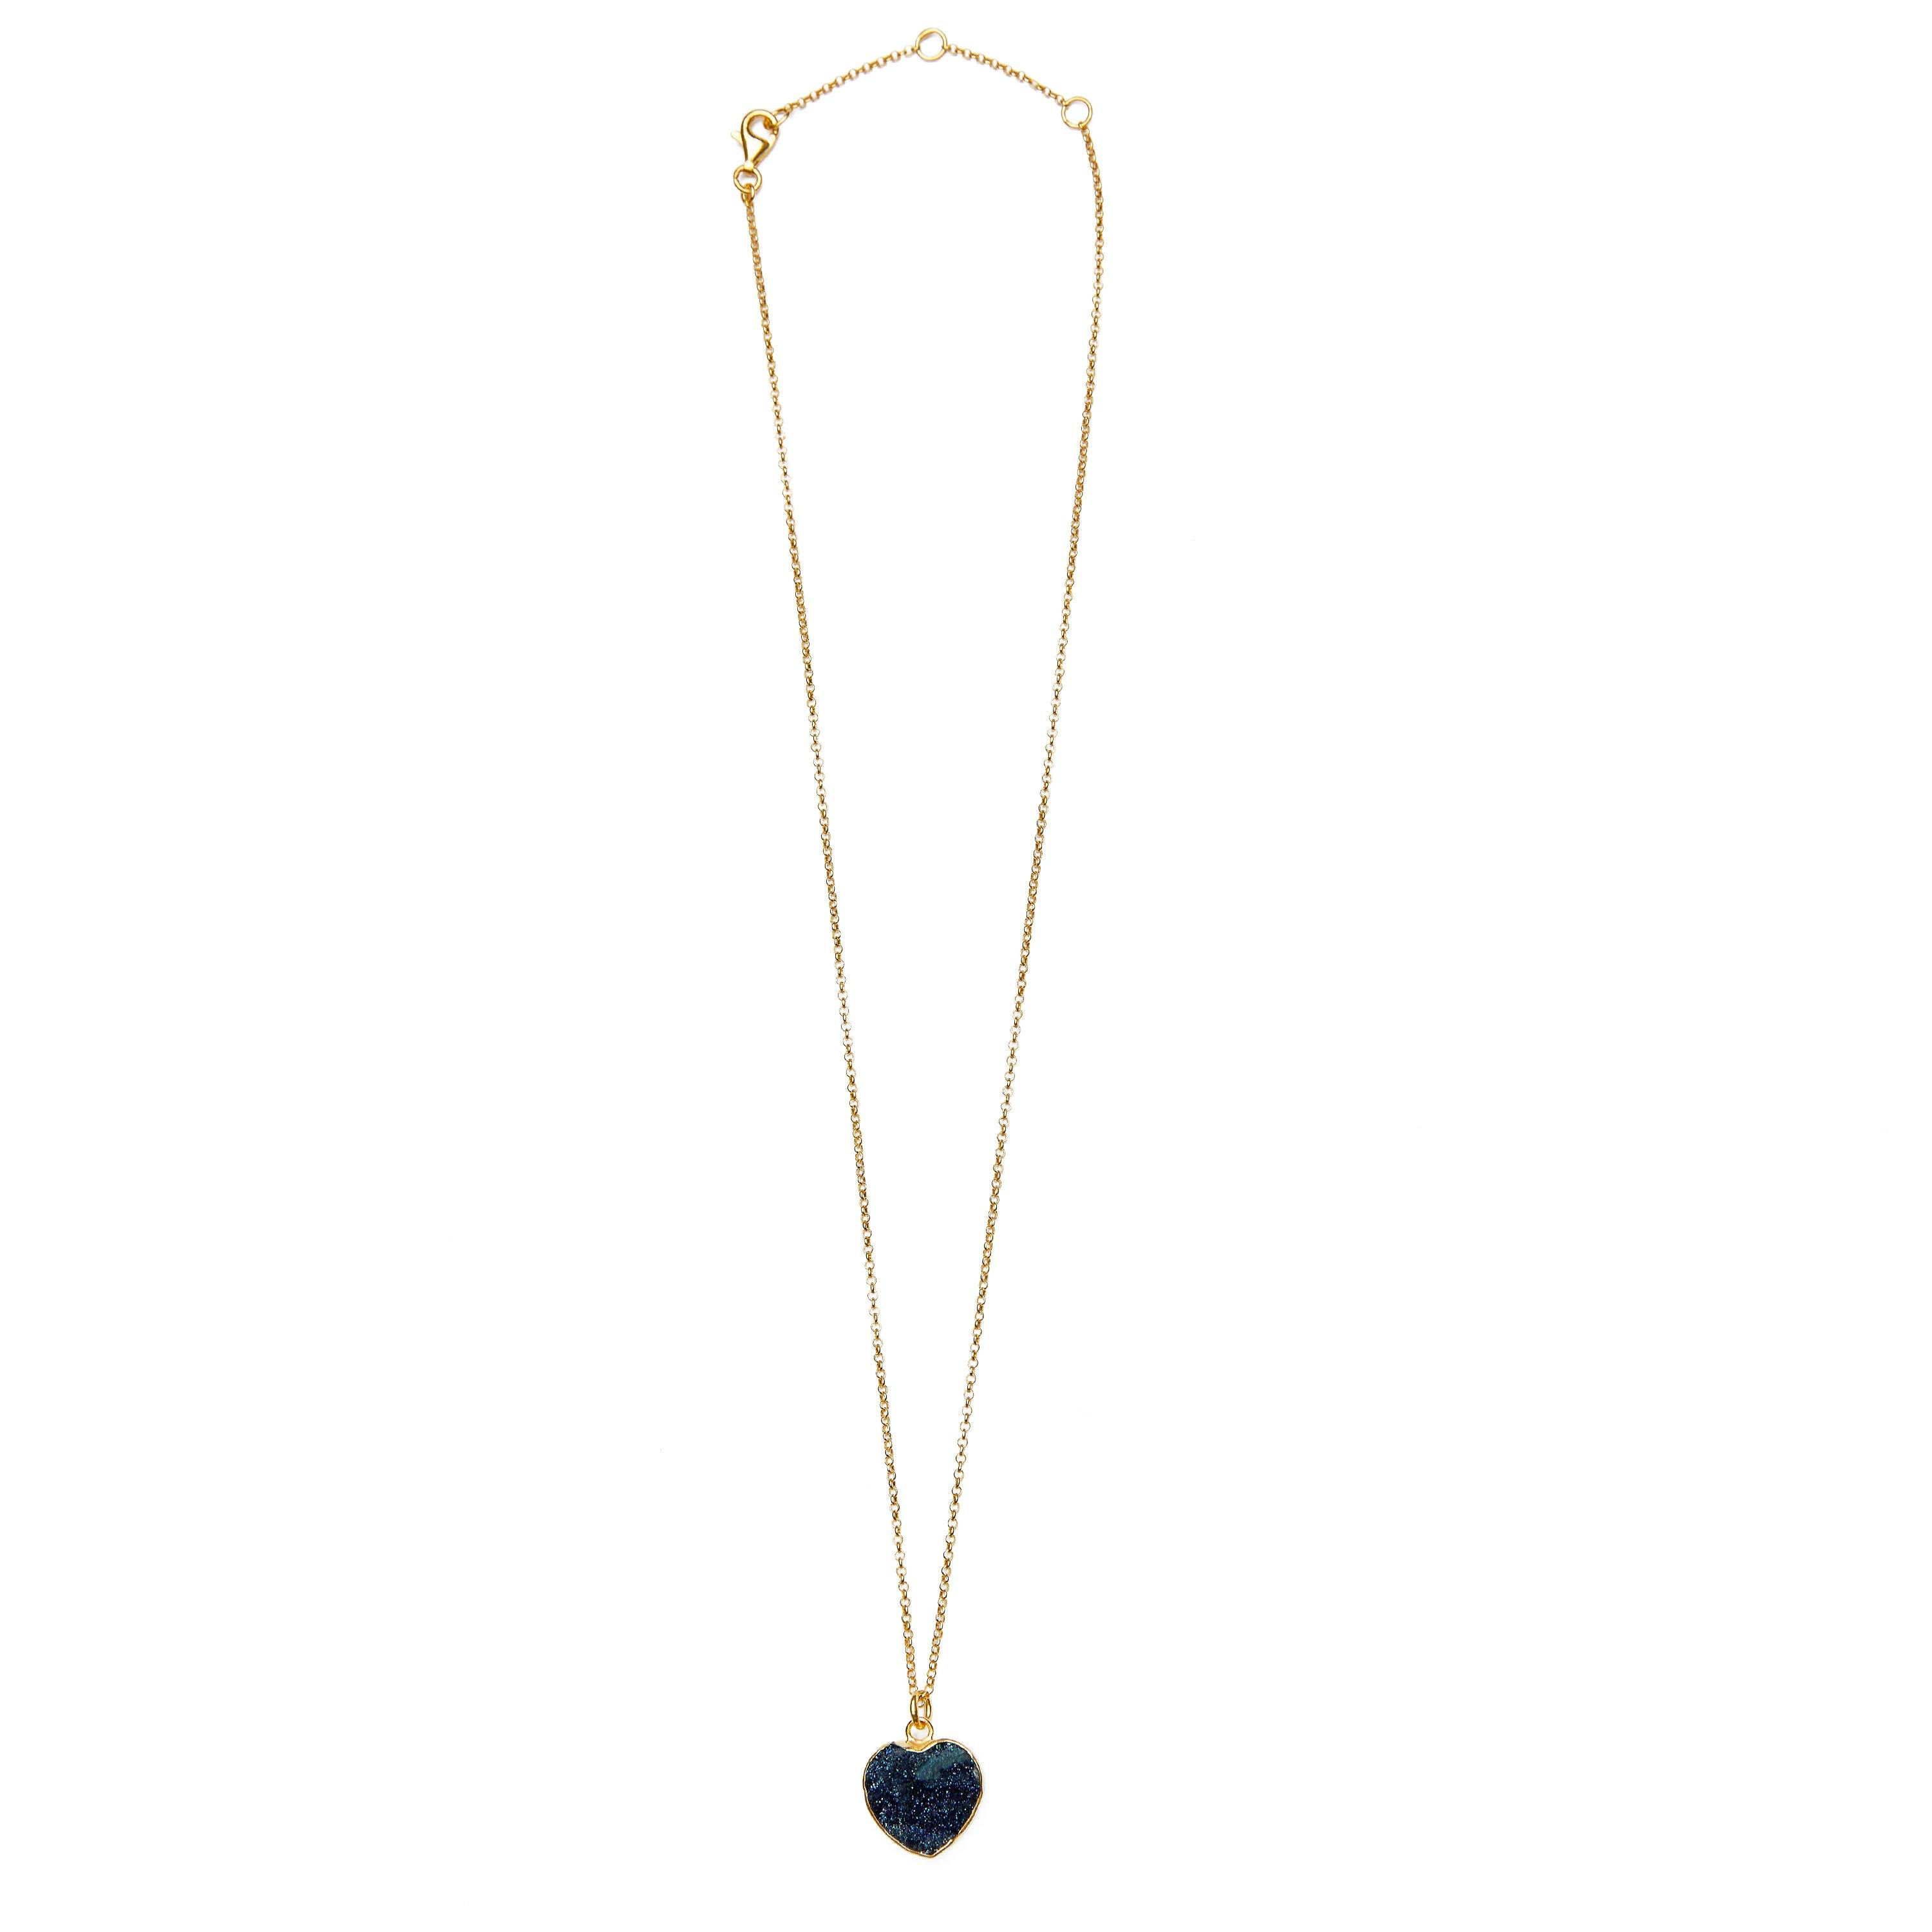 Druzy heart necklace silver gold plated from Santai.no